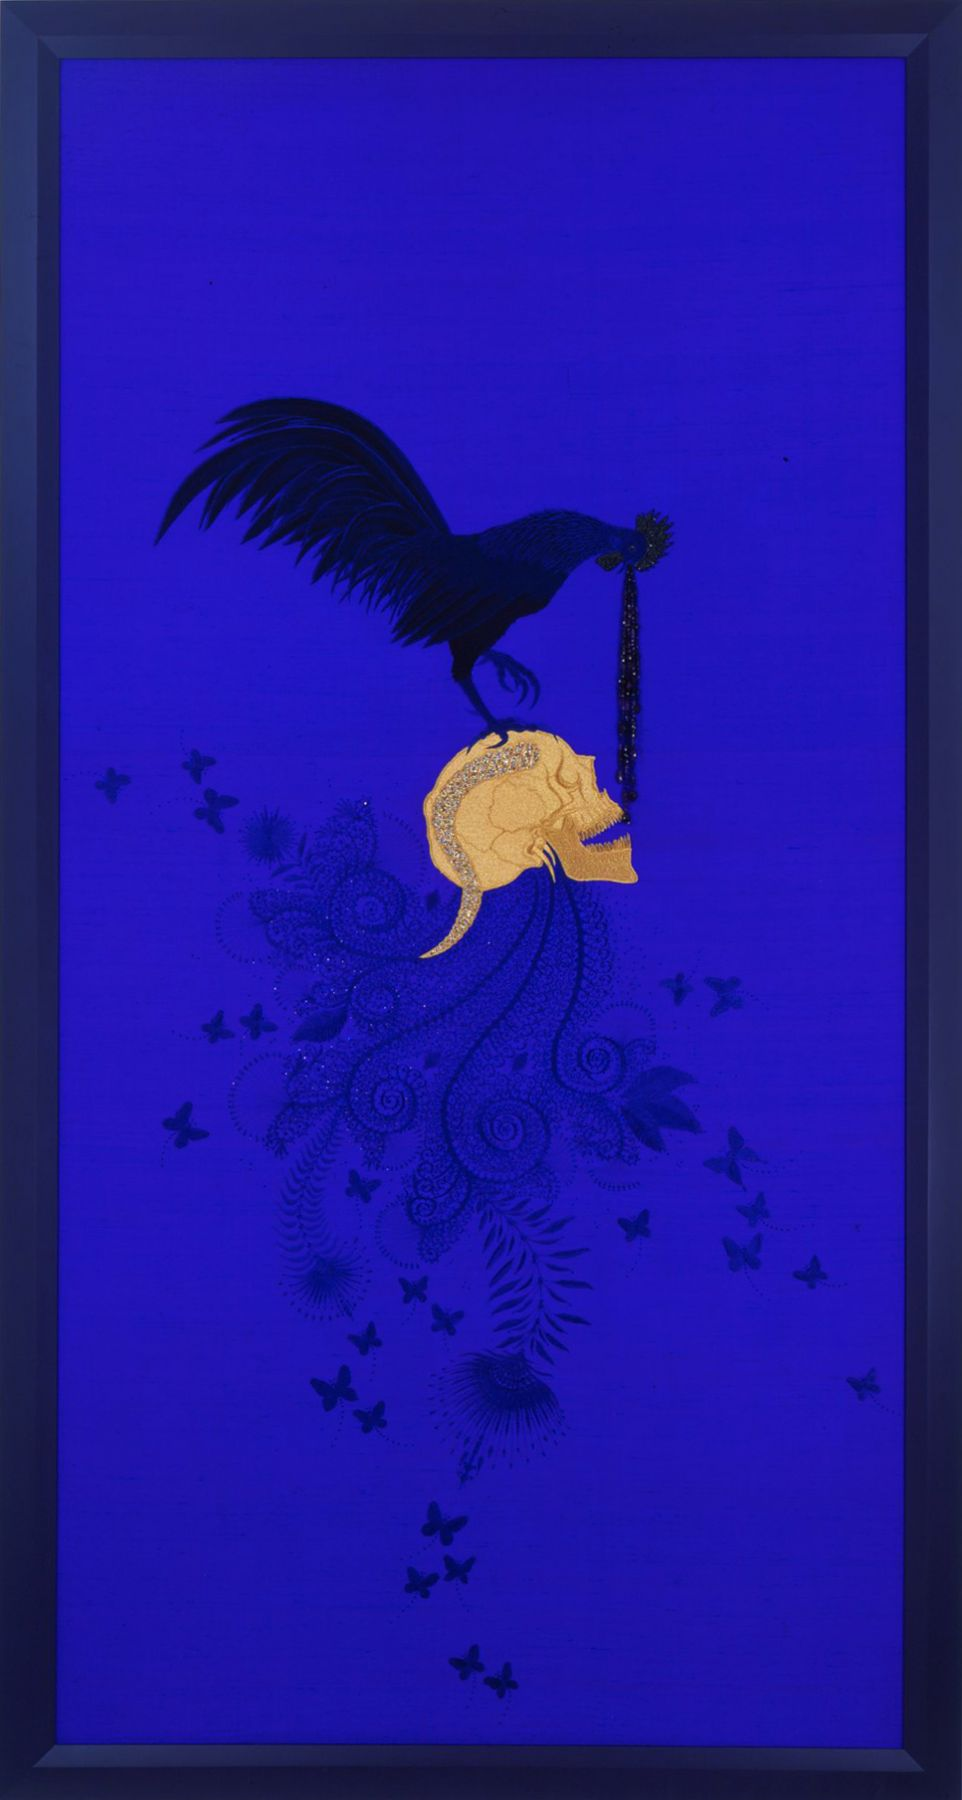 blue embroidery with skull and bird by angelo filomeno